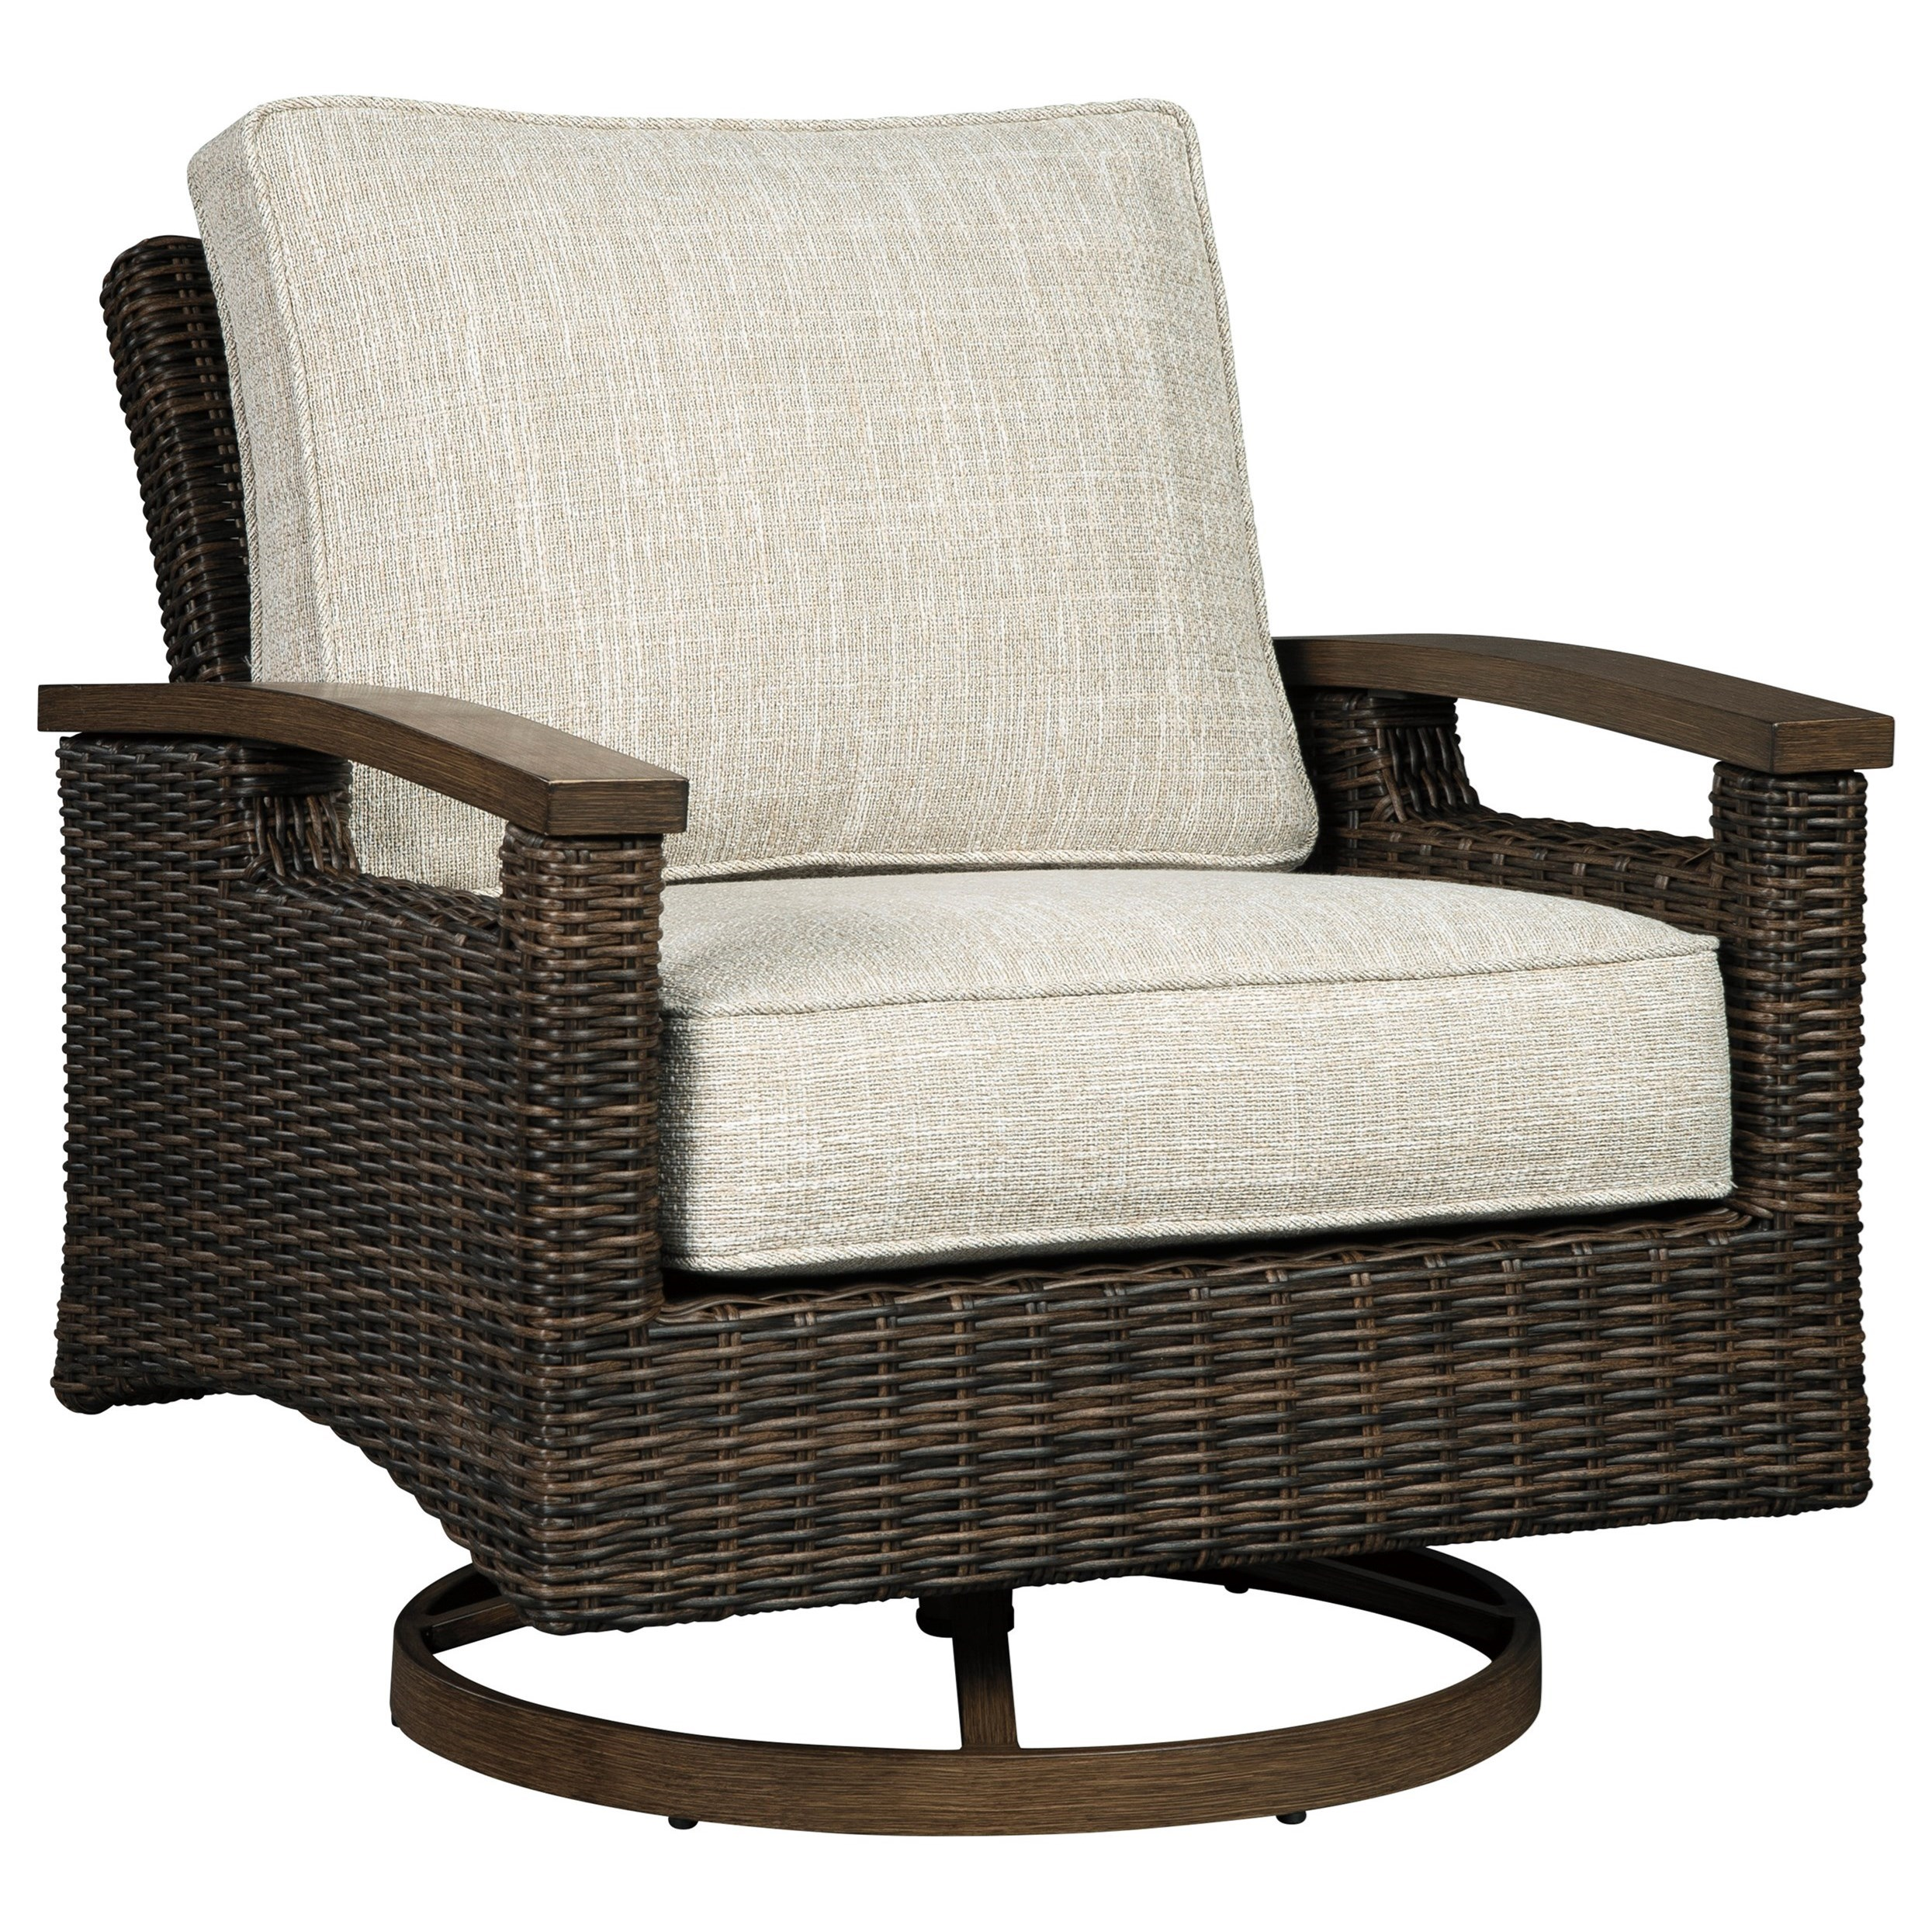 Paradise Trail Set of 2 Swivel Lounge Chairs by Signature at Walker's Furniture